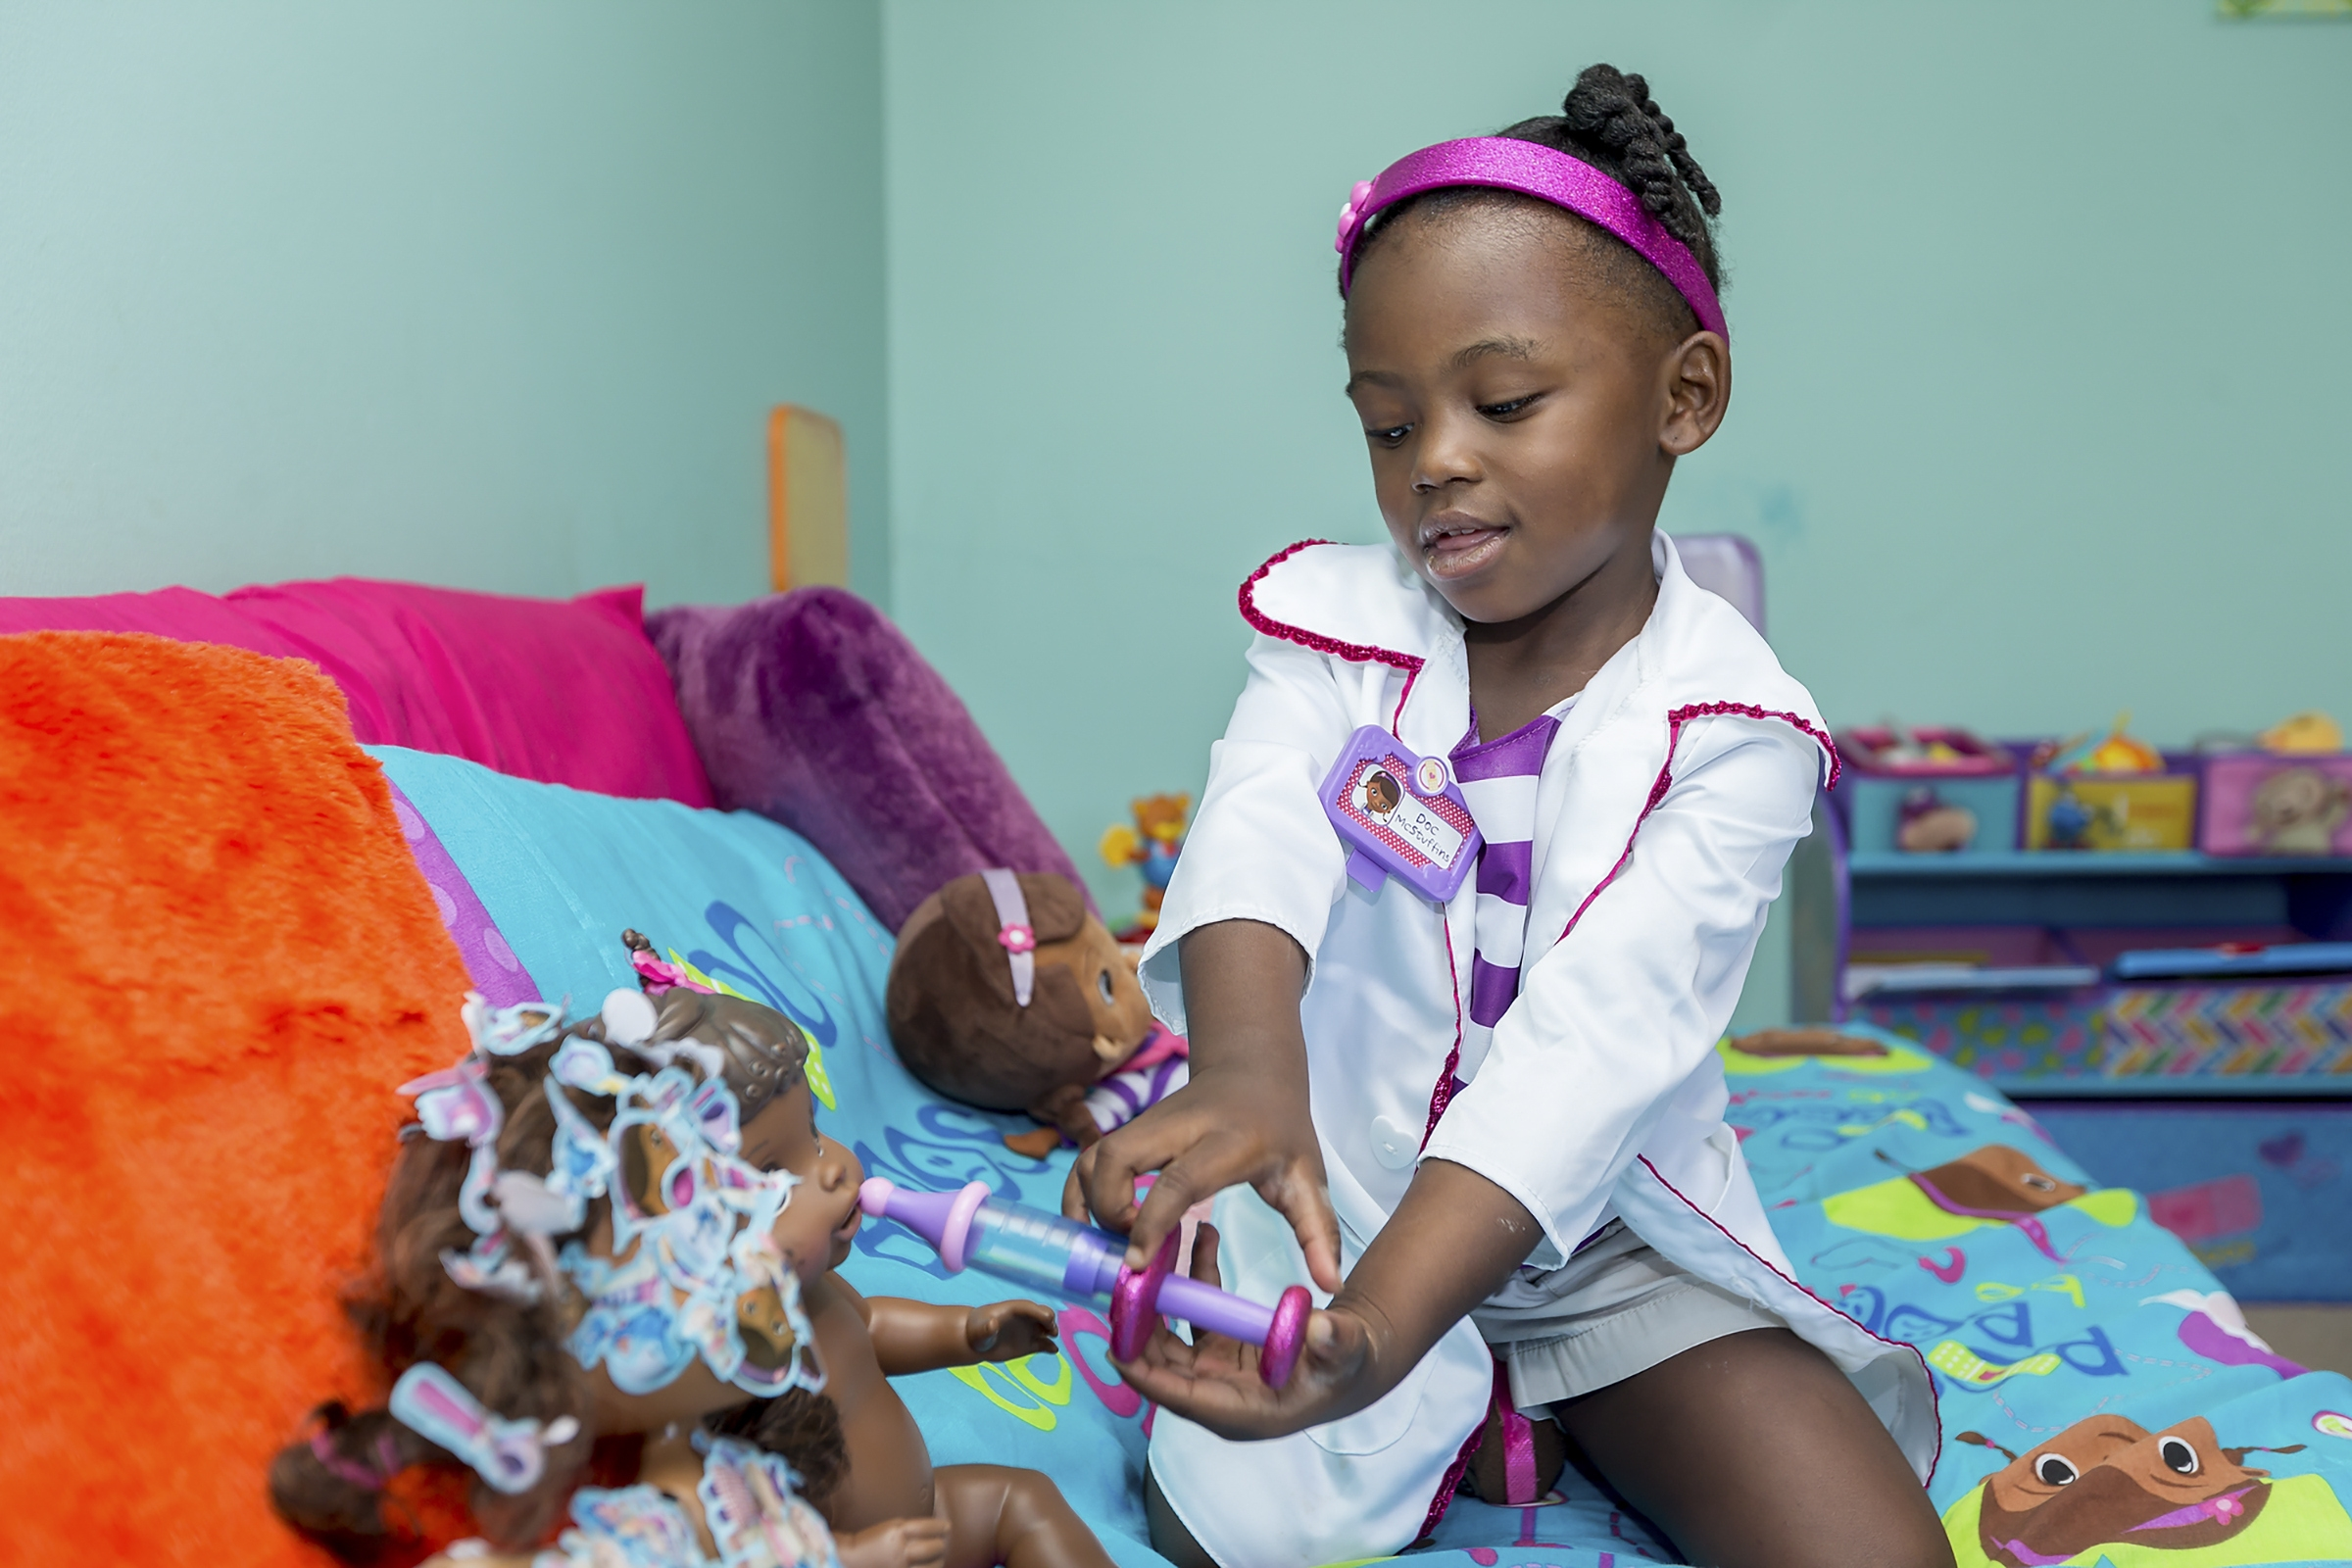 Natalie Elisabeth Battles, 3, plays with Doc McStuffins toys at her home in Mabelvale, Ark., on July 3. Doc McStuffins merchandise made about $500 million in sales last year.